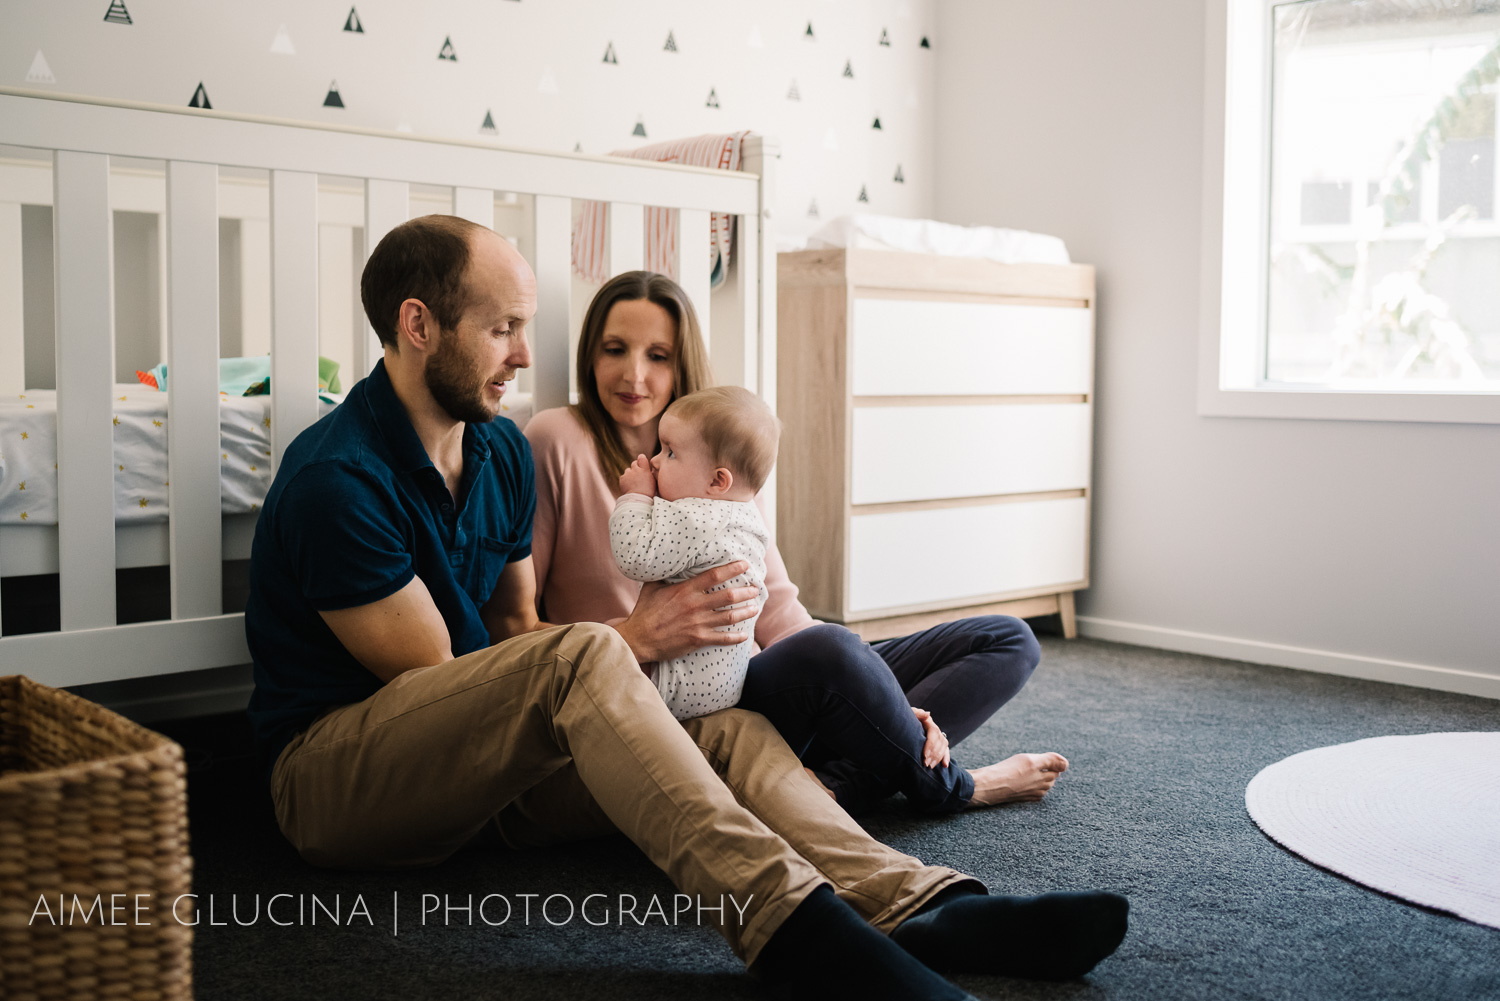 Healy Family Session by Aimee Glucina Photography-14.jpg